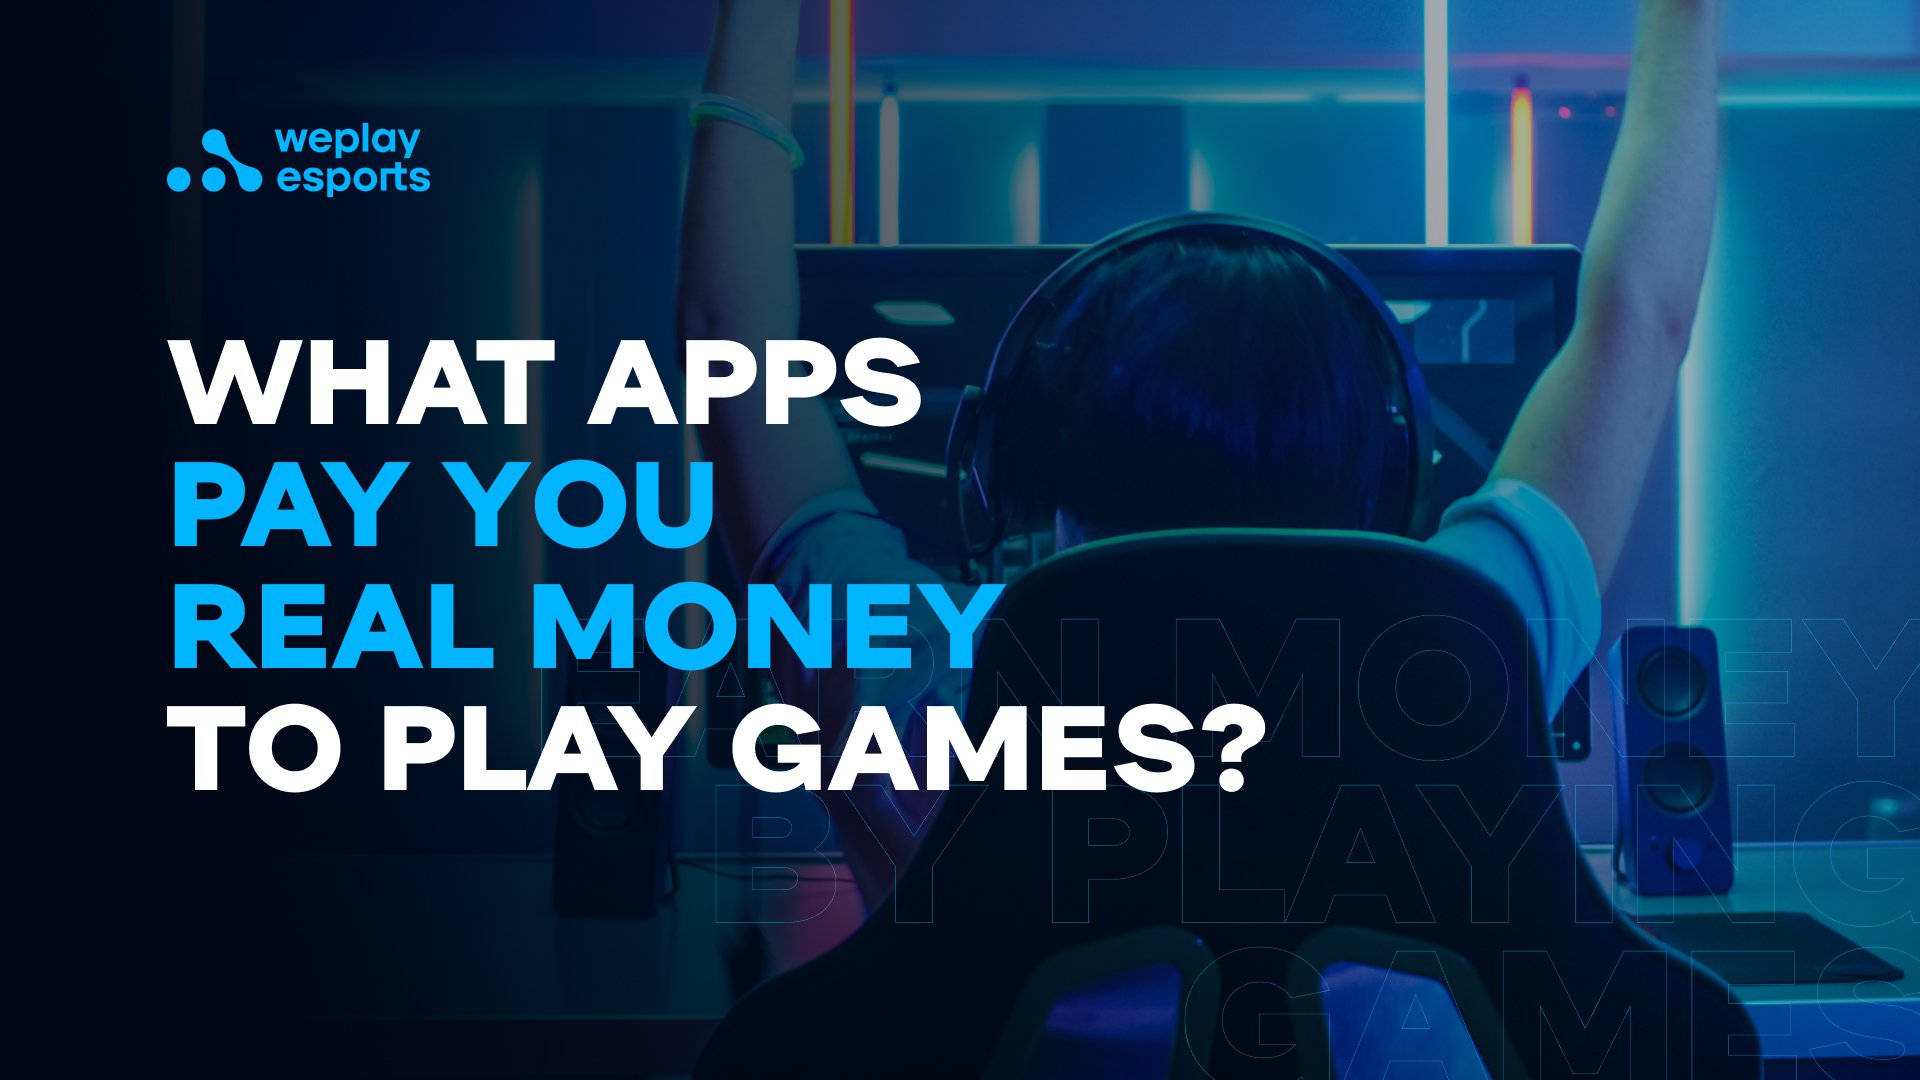 What apps pay you real money to play games?